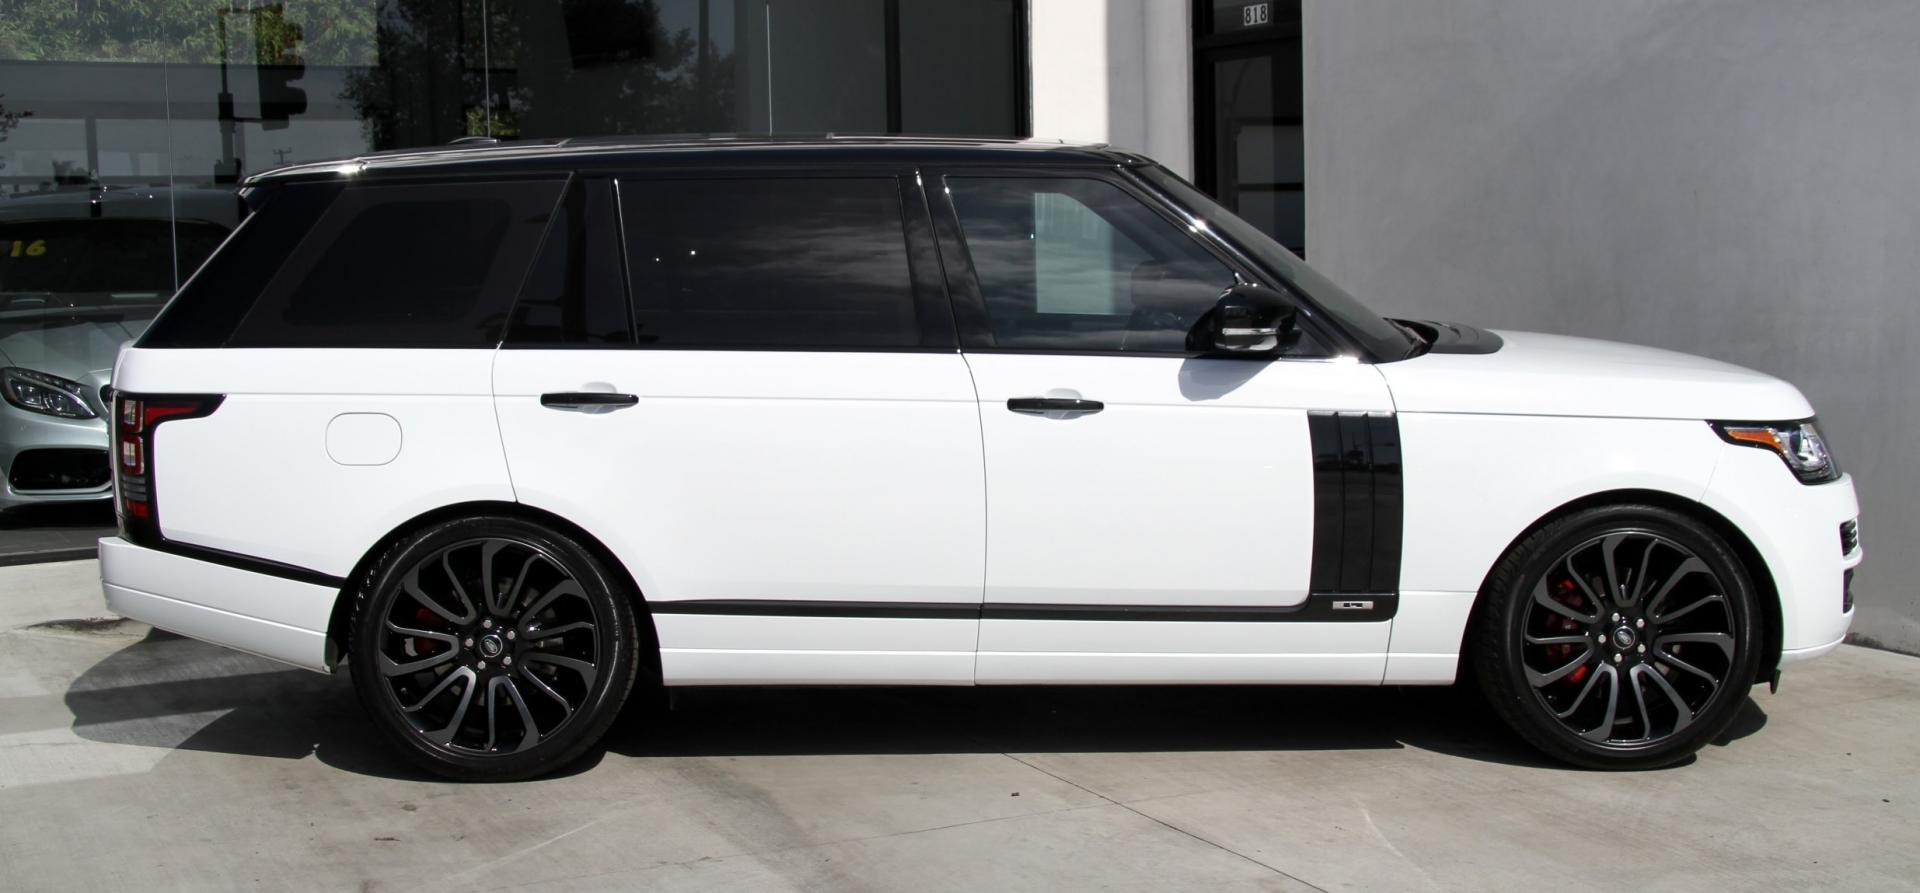 Land Rover For Sale Near Me >> 2015 Land Rover Range Rover Supercharged ** LONG WHEEL BASE ** Stock # 6375A for sale near ...